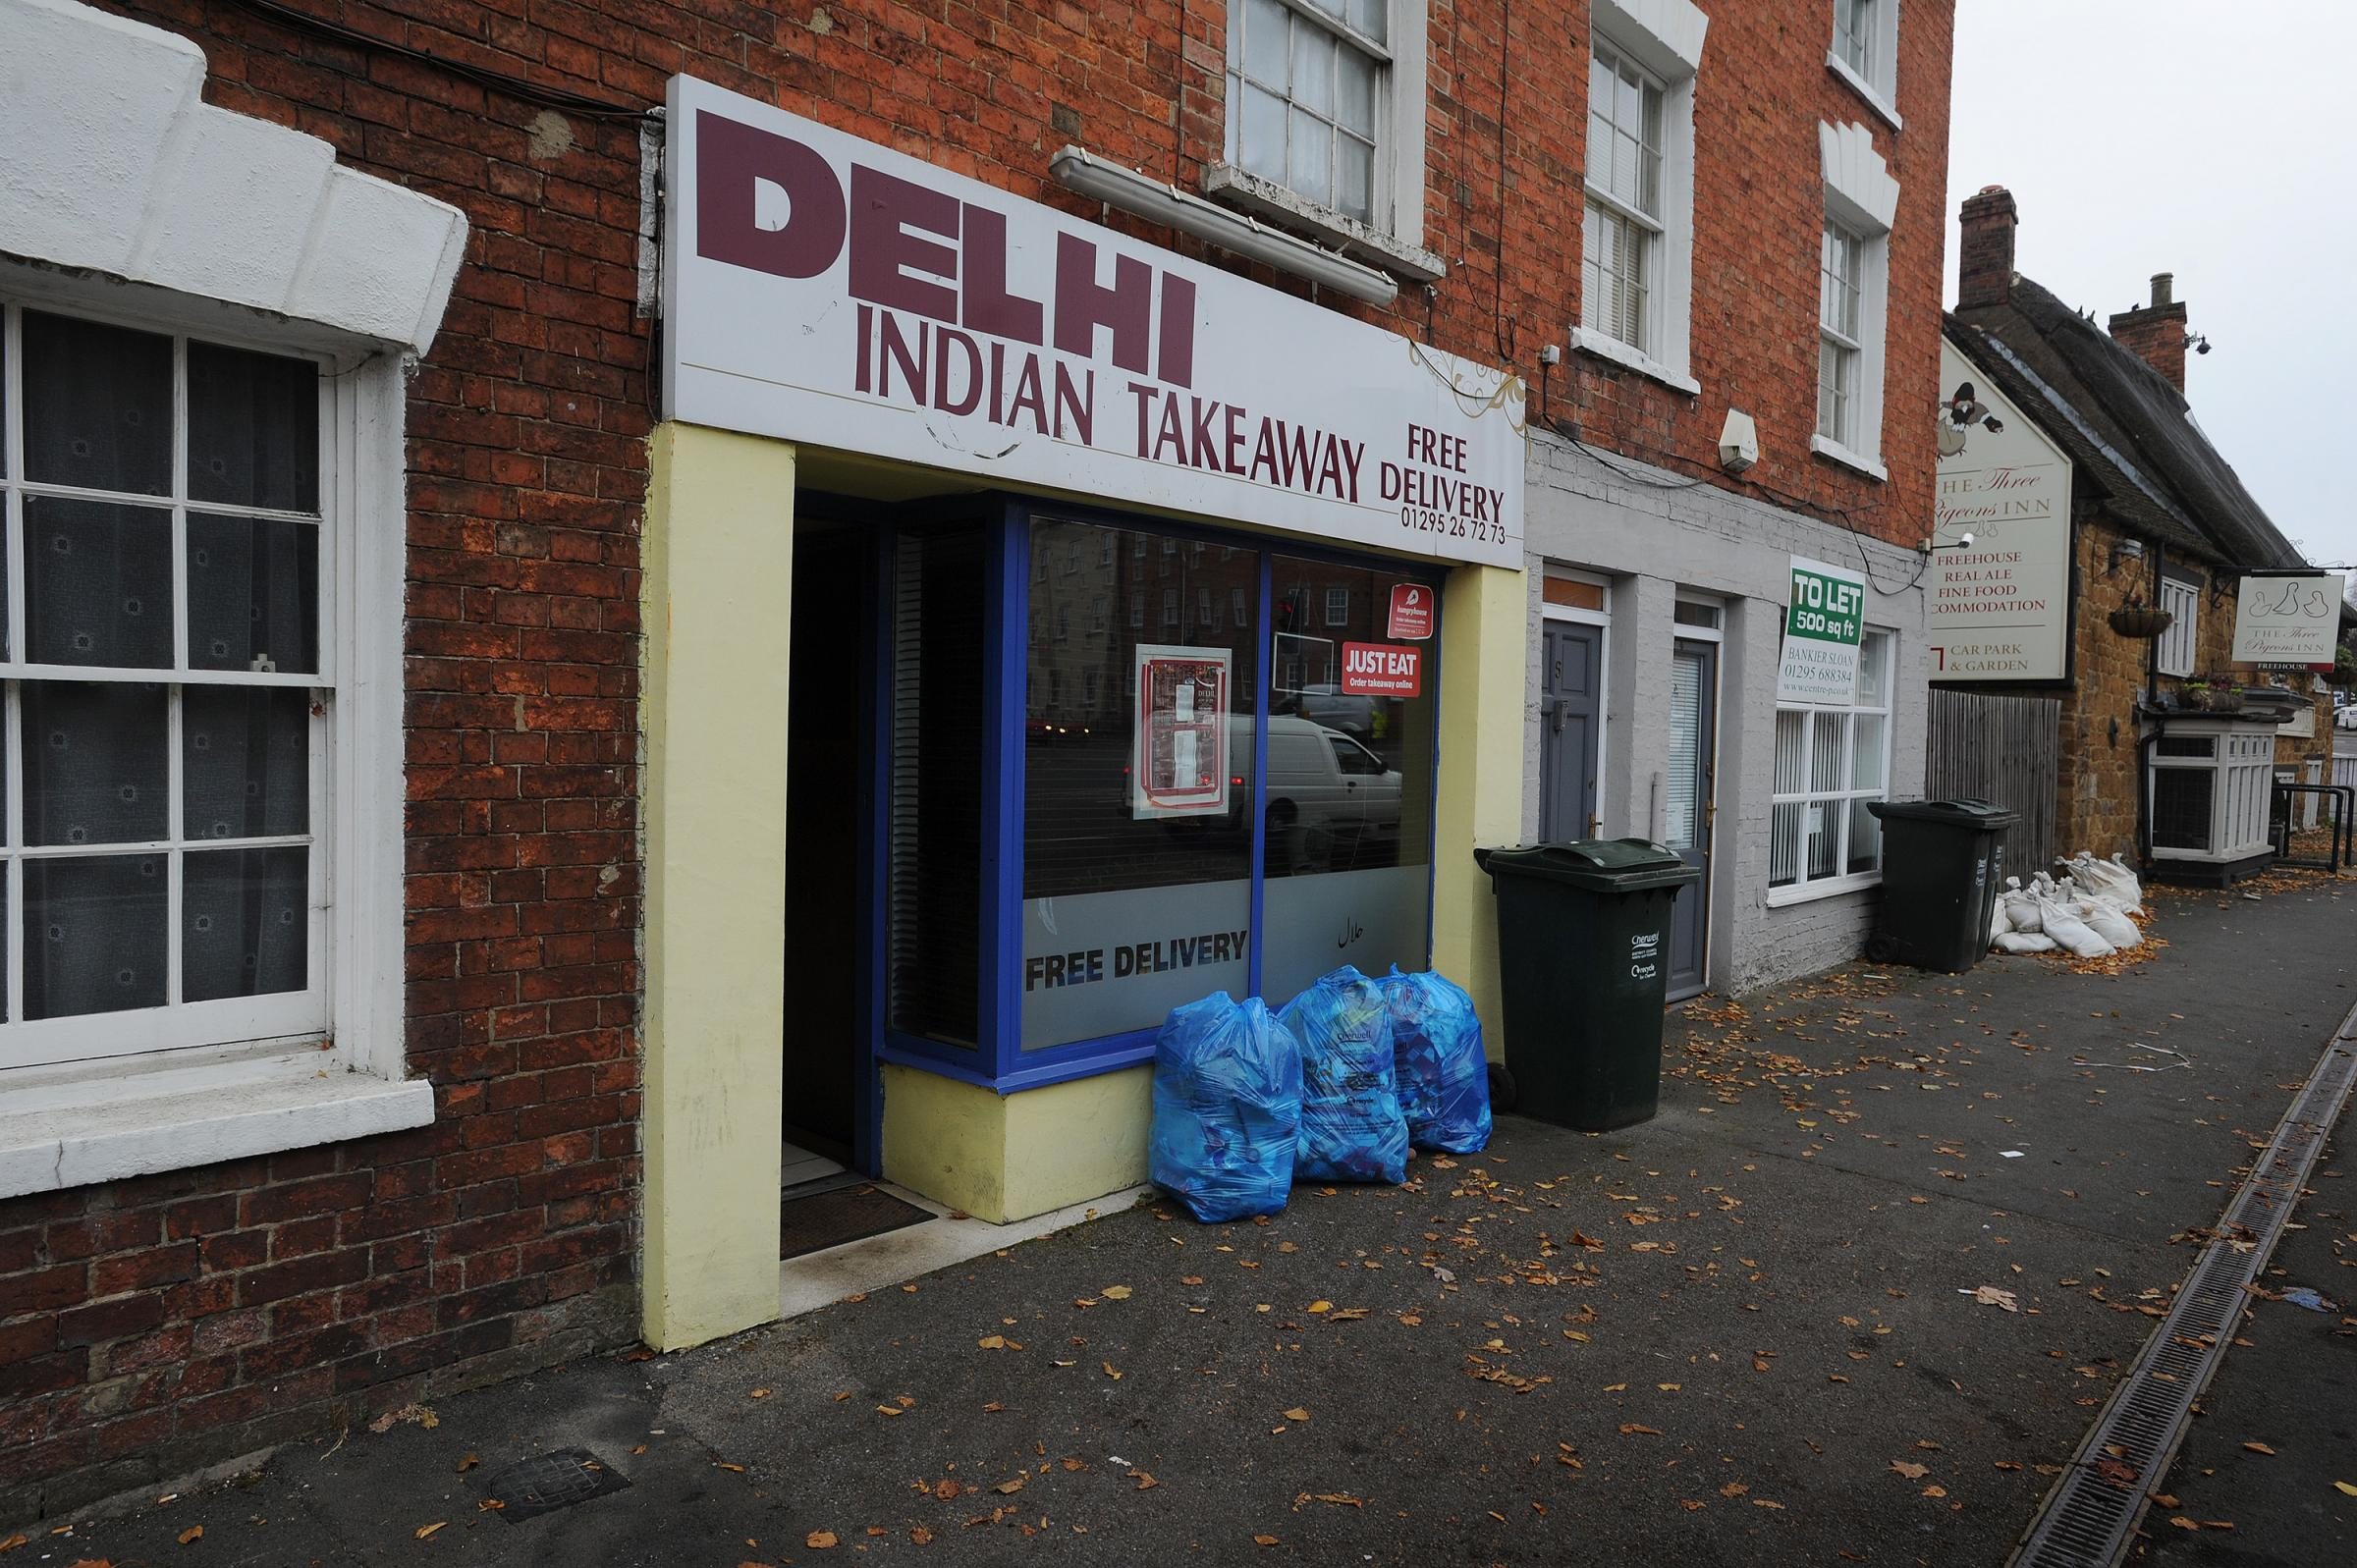 Manager Of Delhi Indian Takeaway In Banbury Unfazed By Poor